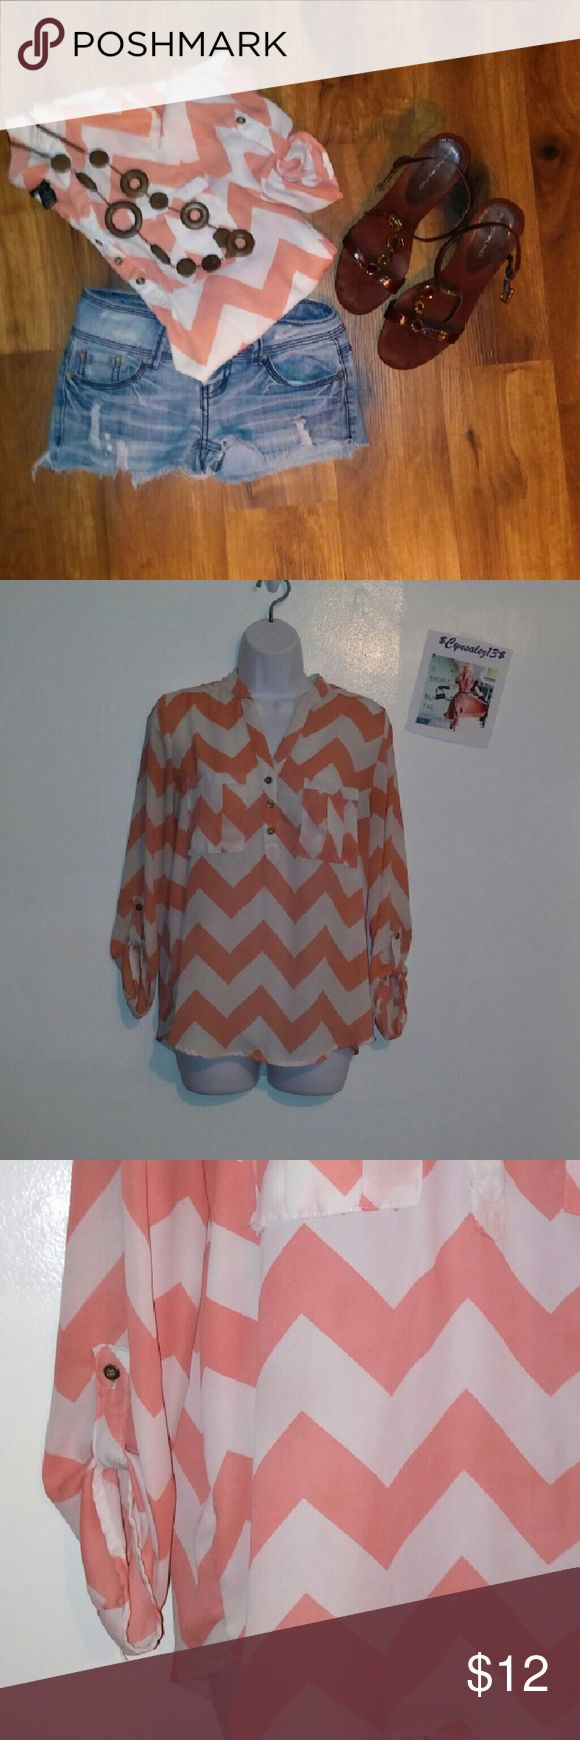 Flawless Rue 21 Chevron blouse Very nice rue blouse. This blouse is chiffon and sheer and can be worn a few different ways to wear different styles.   ❗ BUNDLE AND SAVE❗  $1 off each item purchased and  ✨15%off bundle✨  Check out all my other items as I add new items daily. I am on a few sites so my items sell fast, get it while you can. I except most reasonable offers!   ✔ Like a sold item to bookmark my closet. I delete and relist frequently. Rue 21 Tops Blouses